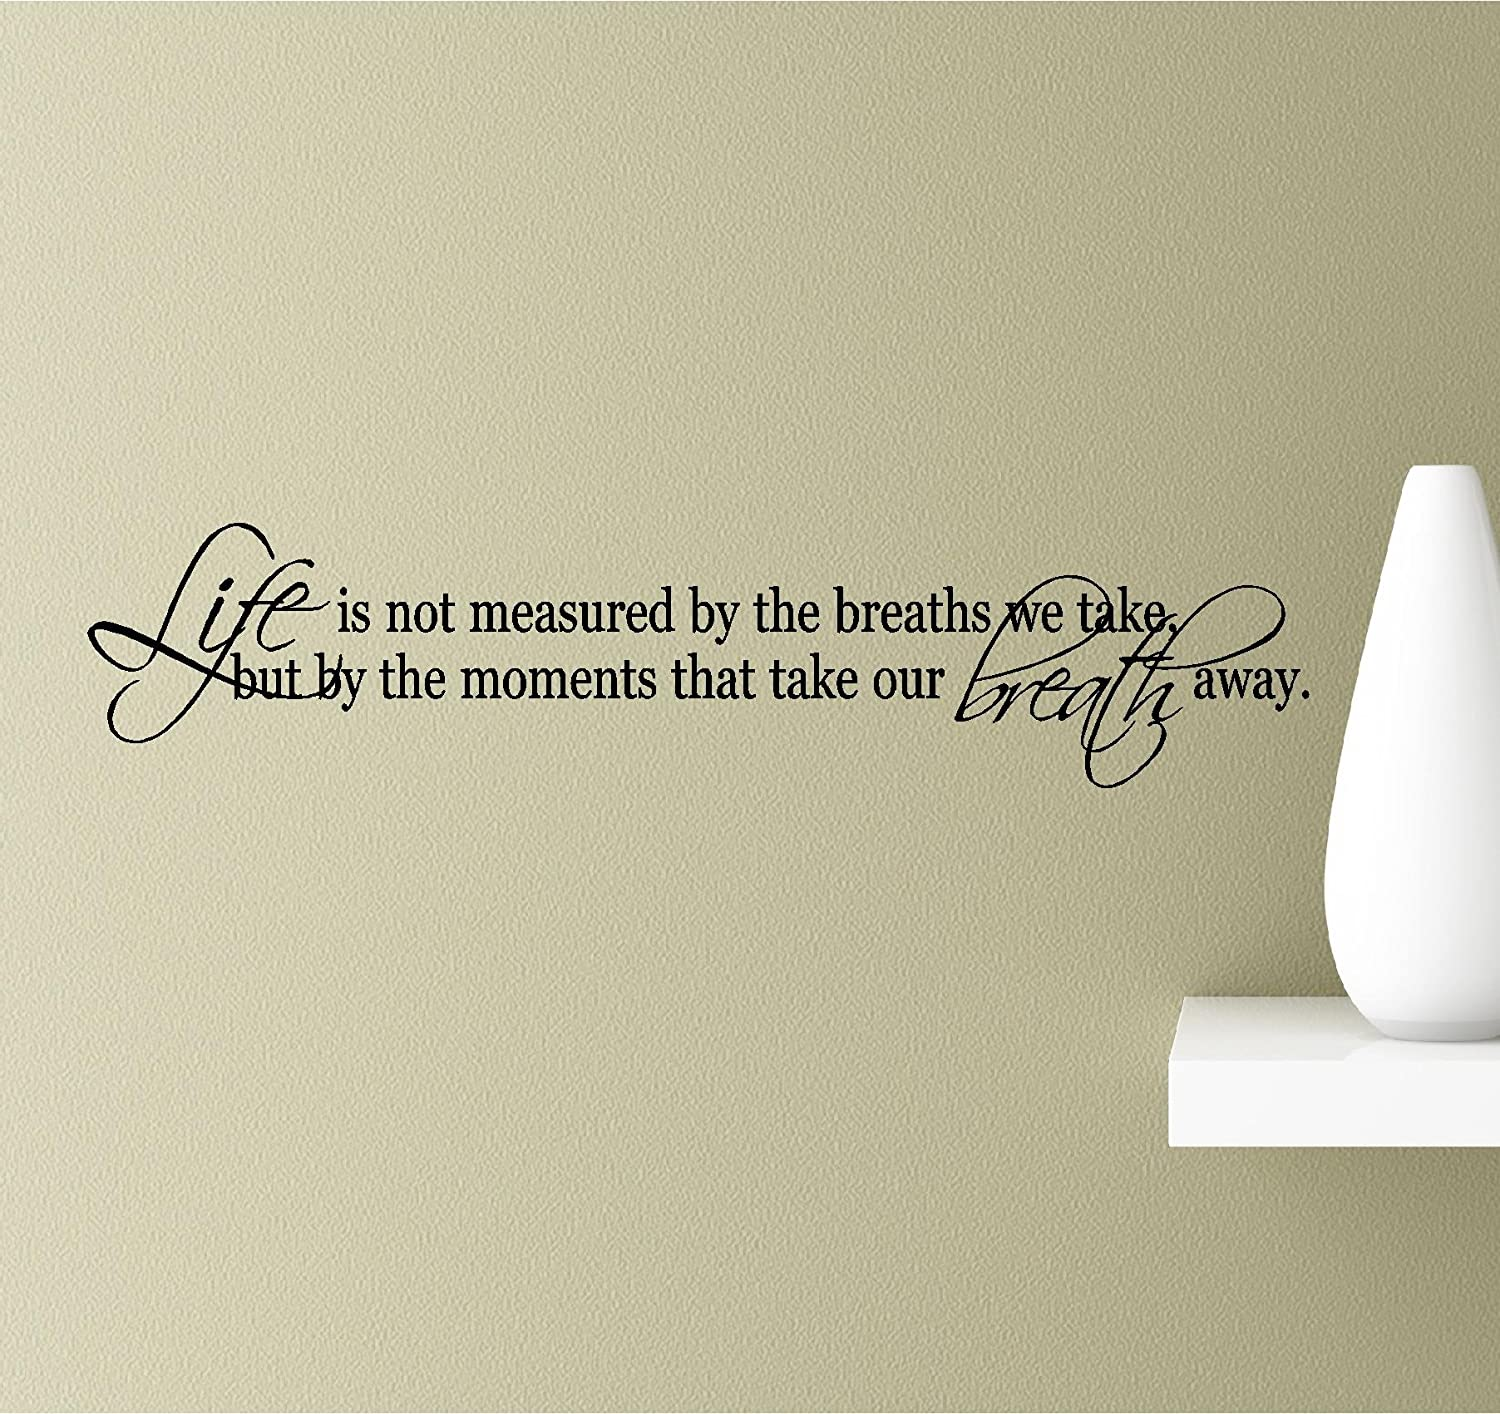 Life is not Measured by The Breaths we take, but by The Moments That take Our Breath Away. Vinyl Wall Art Inspirational Quotes Decal Sticker